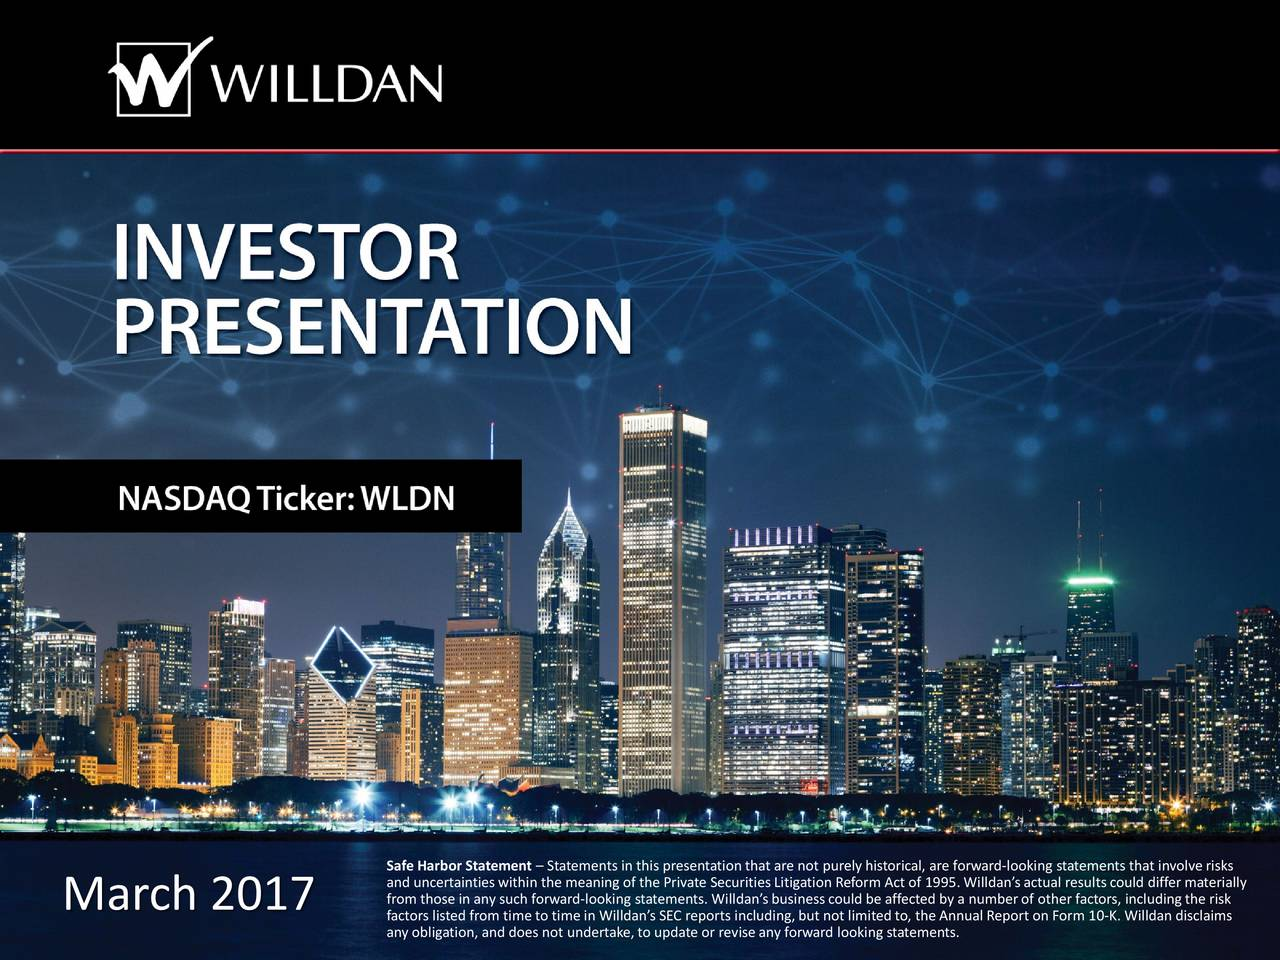 from those in any such forward-looking statements. Willdans business could be affected by a numberof other factors, including the riskerially March 2017 factors listed from time to time in Willdans SEC reports including,but not limited to, the Annual Report on Form 10 -K. Willdan disclaims any obligation, and does not undertake,to update or revise any forward looking statements.